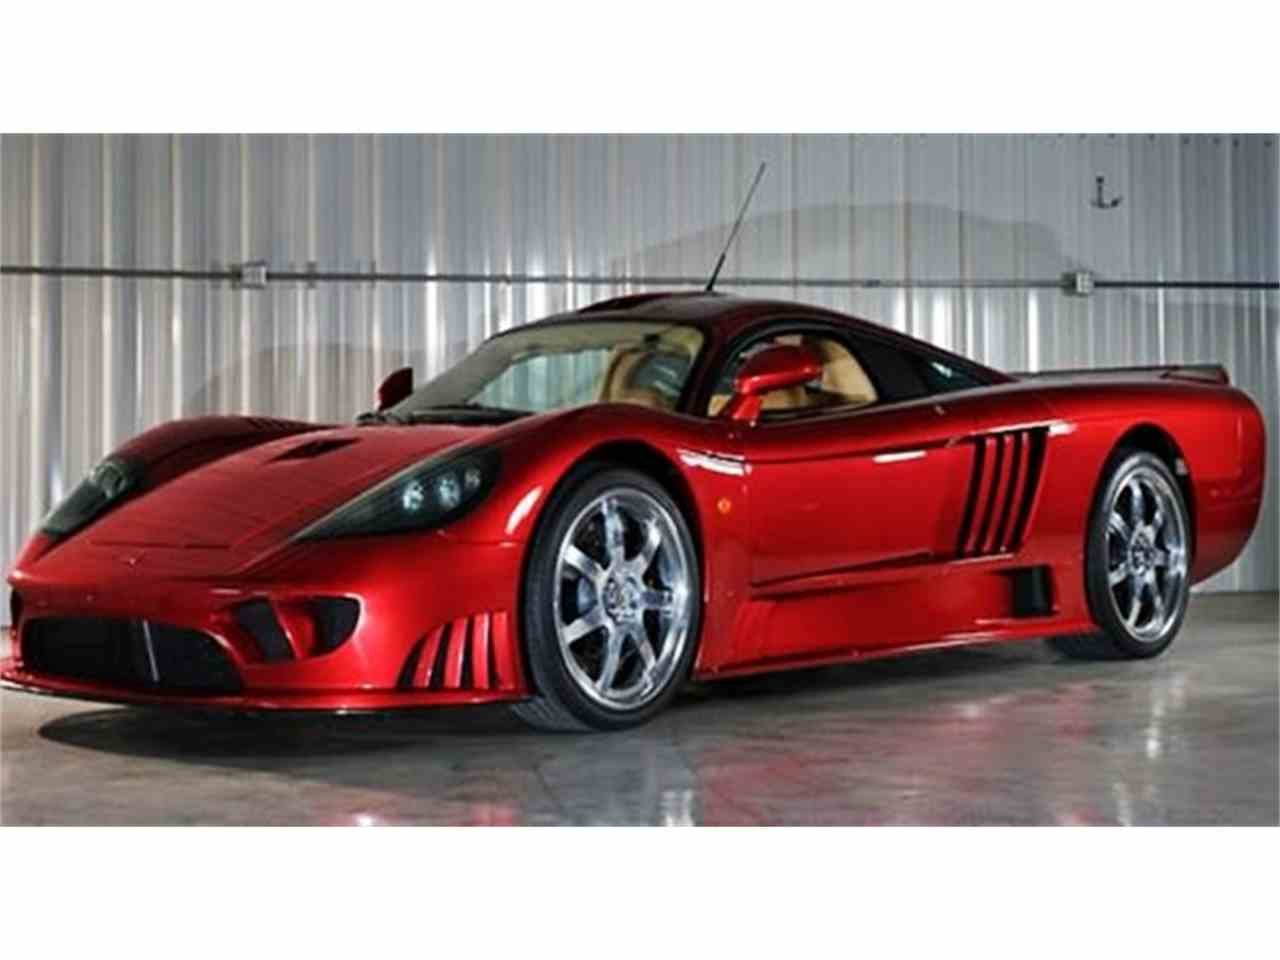 Saleen S7 For Sale >> 2003 Saleen S7 for Sale | ClassicCars.com | CC-635707